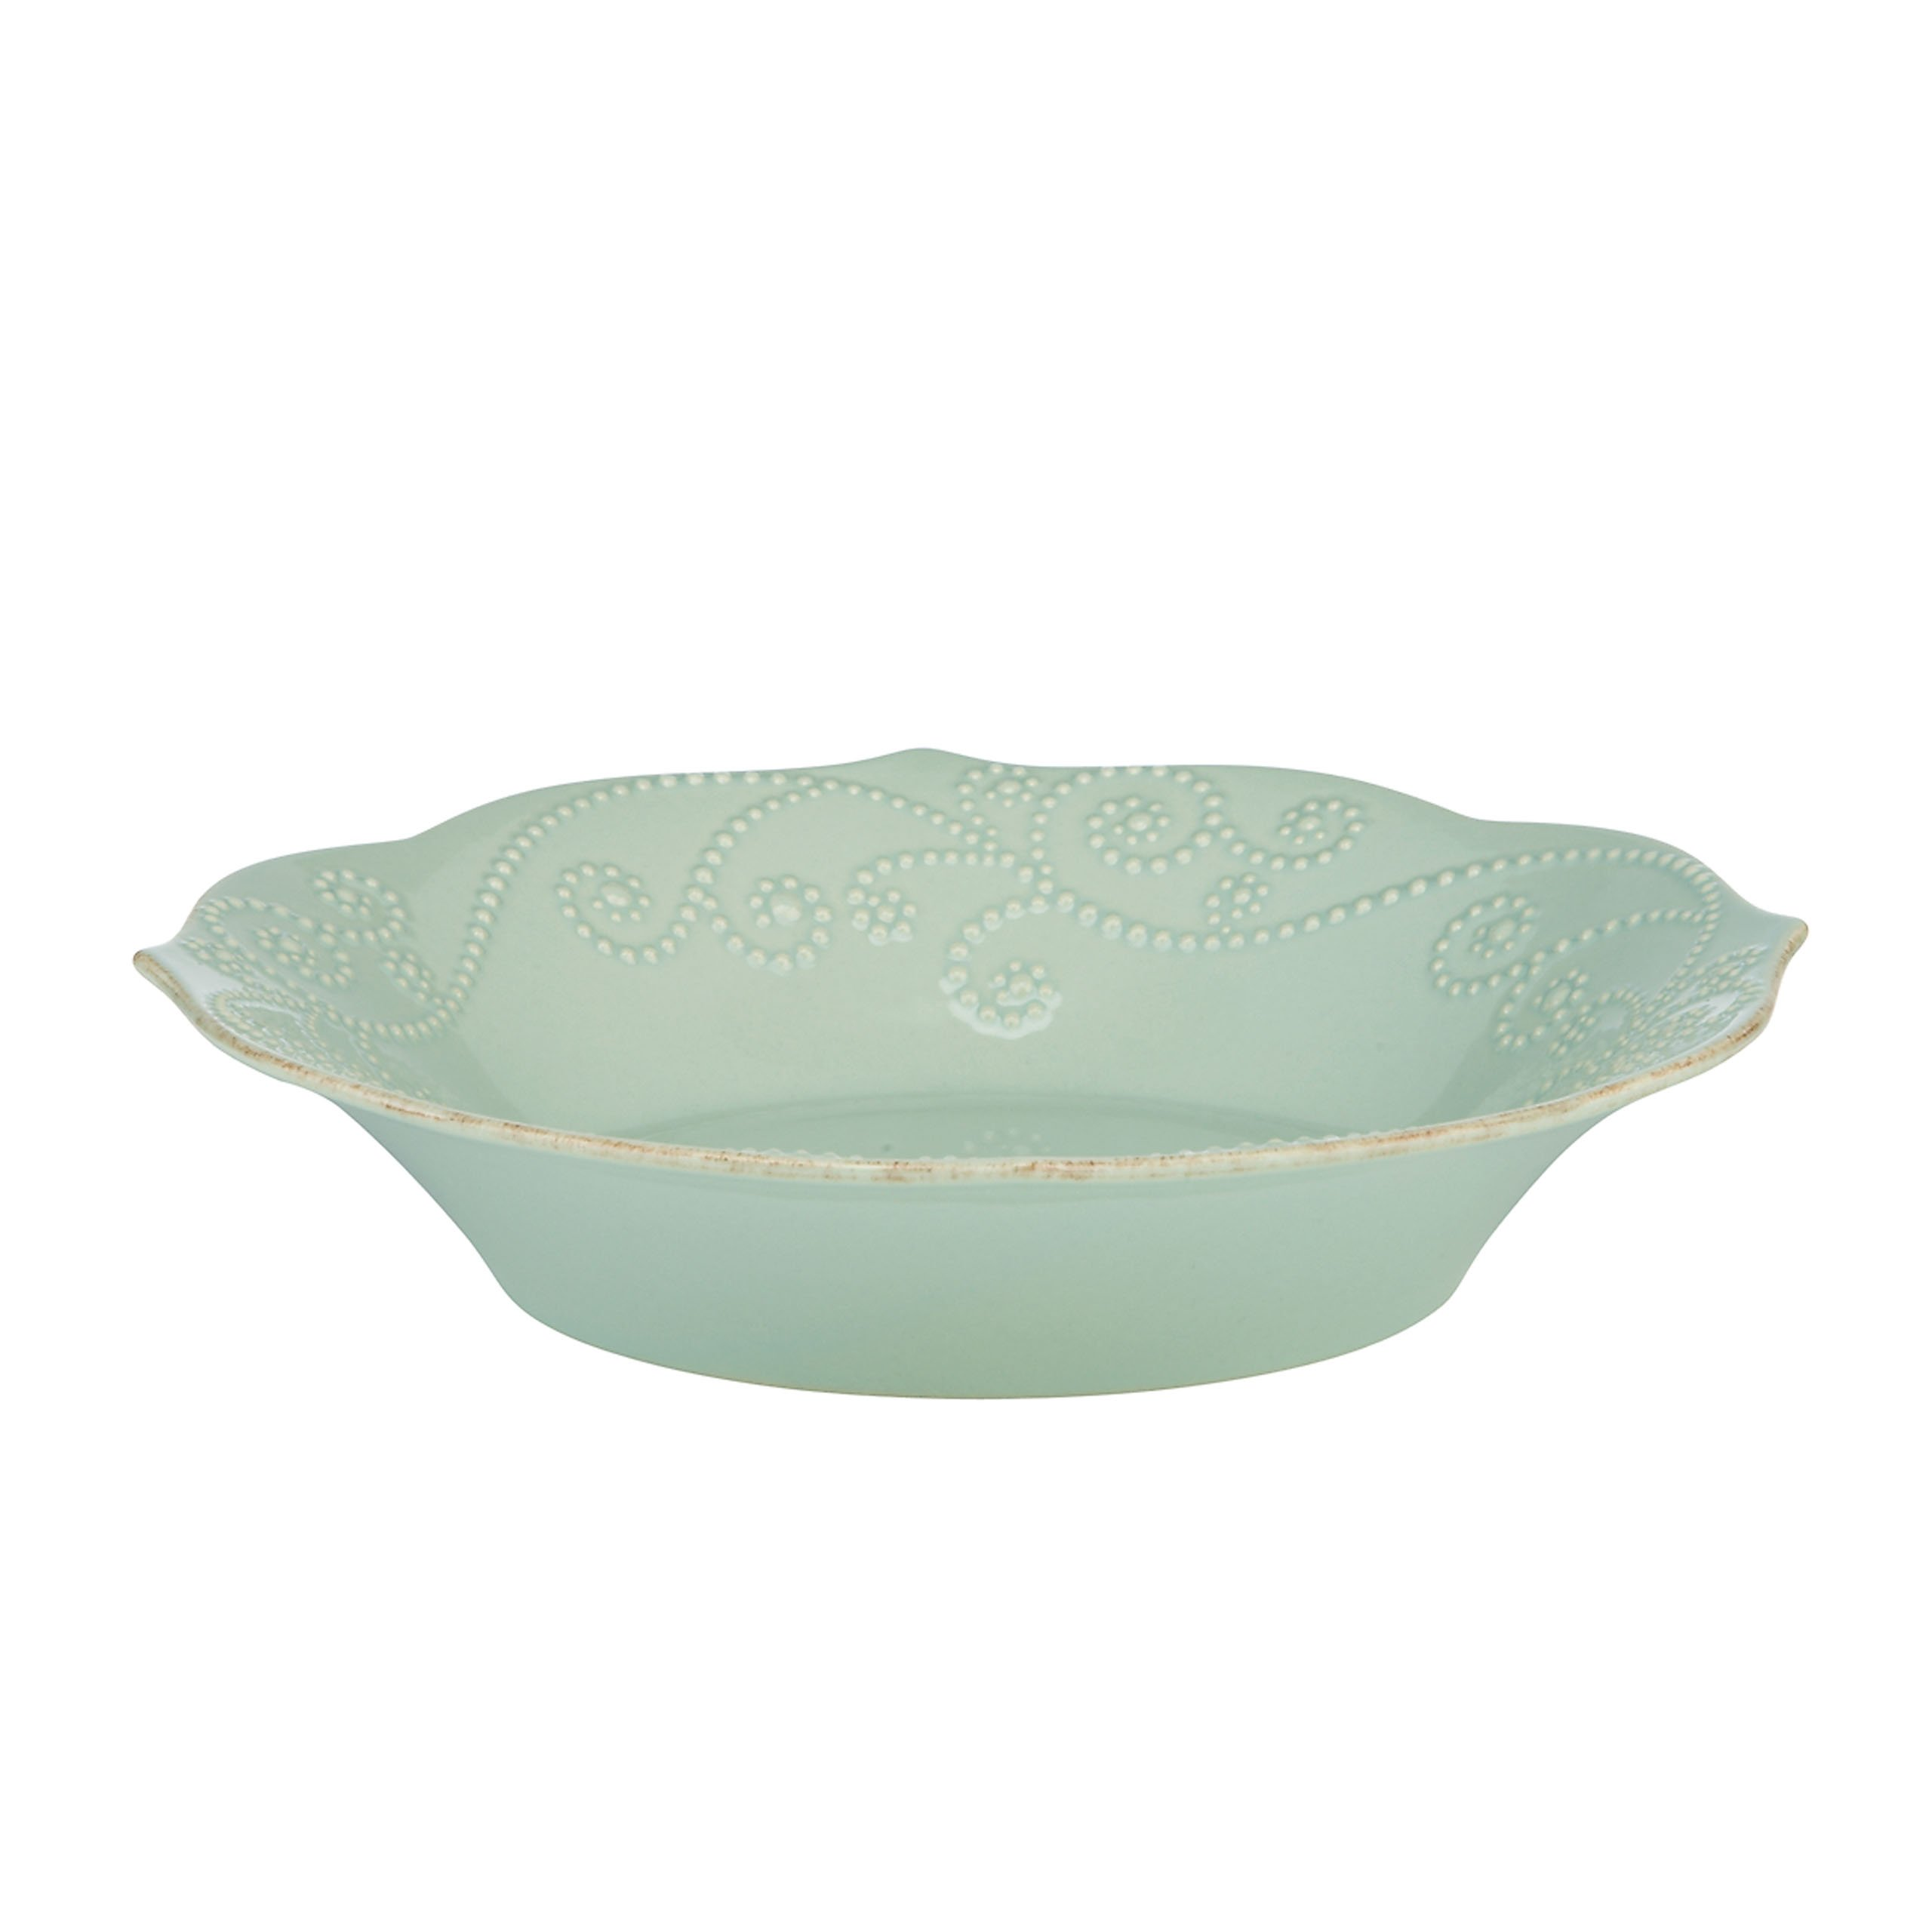 Lenox French Perle Individual Pasta Bowl, Ice Blue